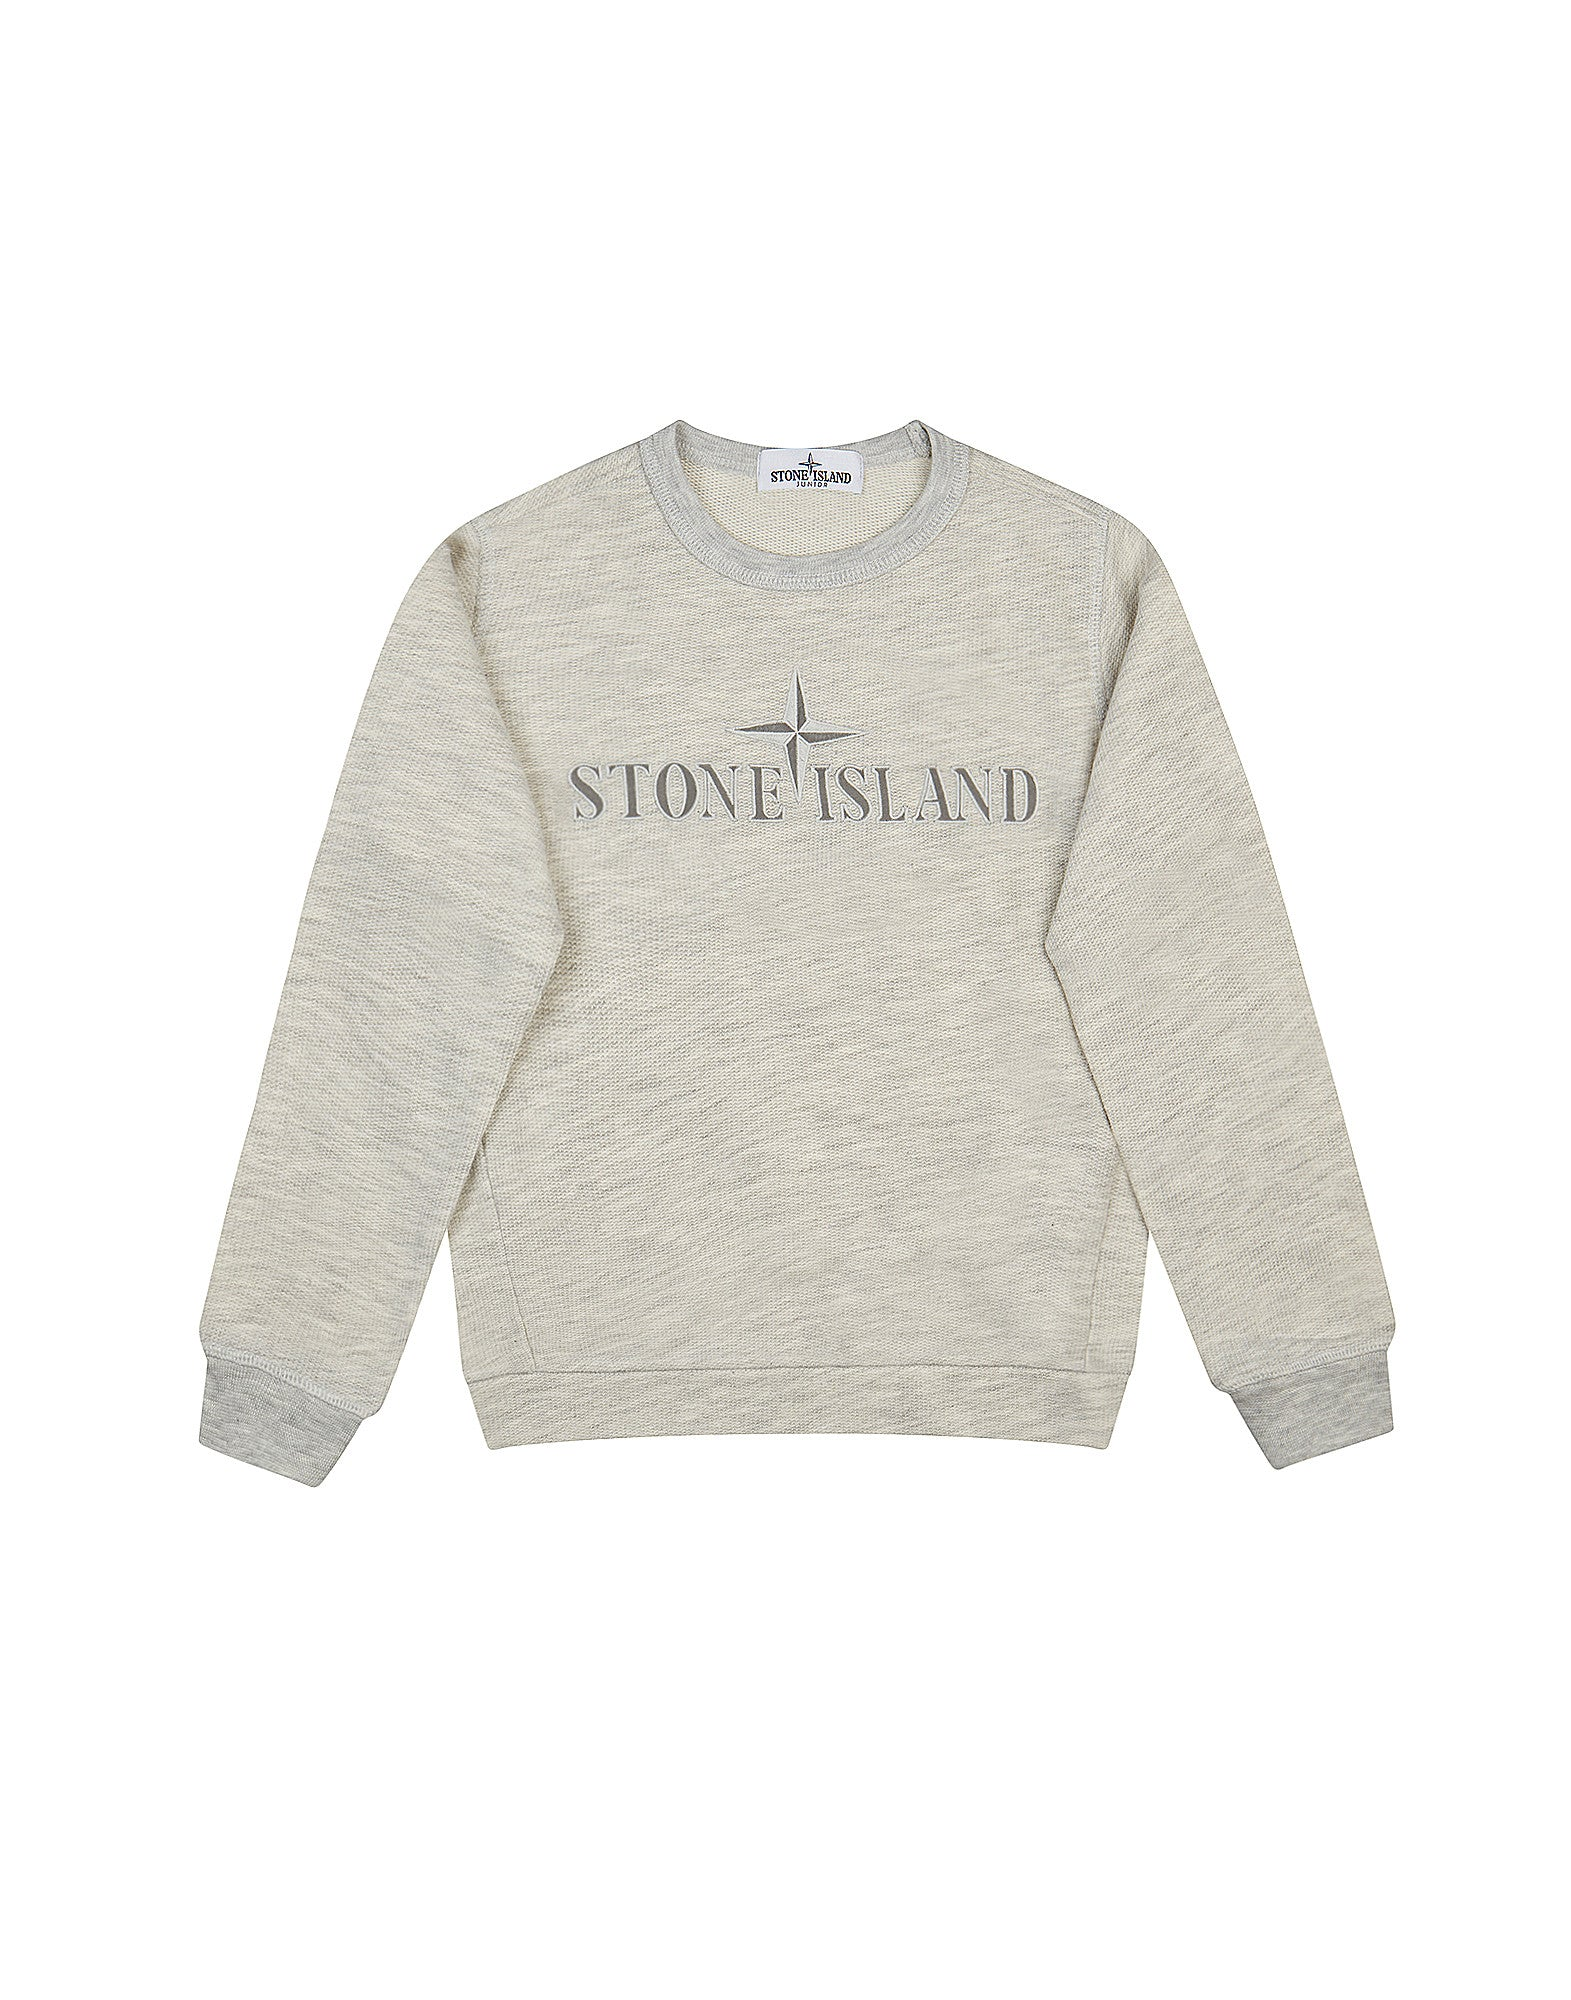 60943 Sweatshirt in Grey